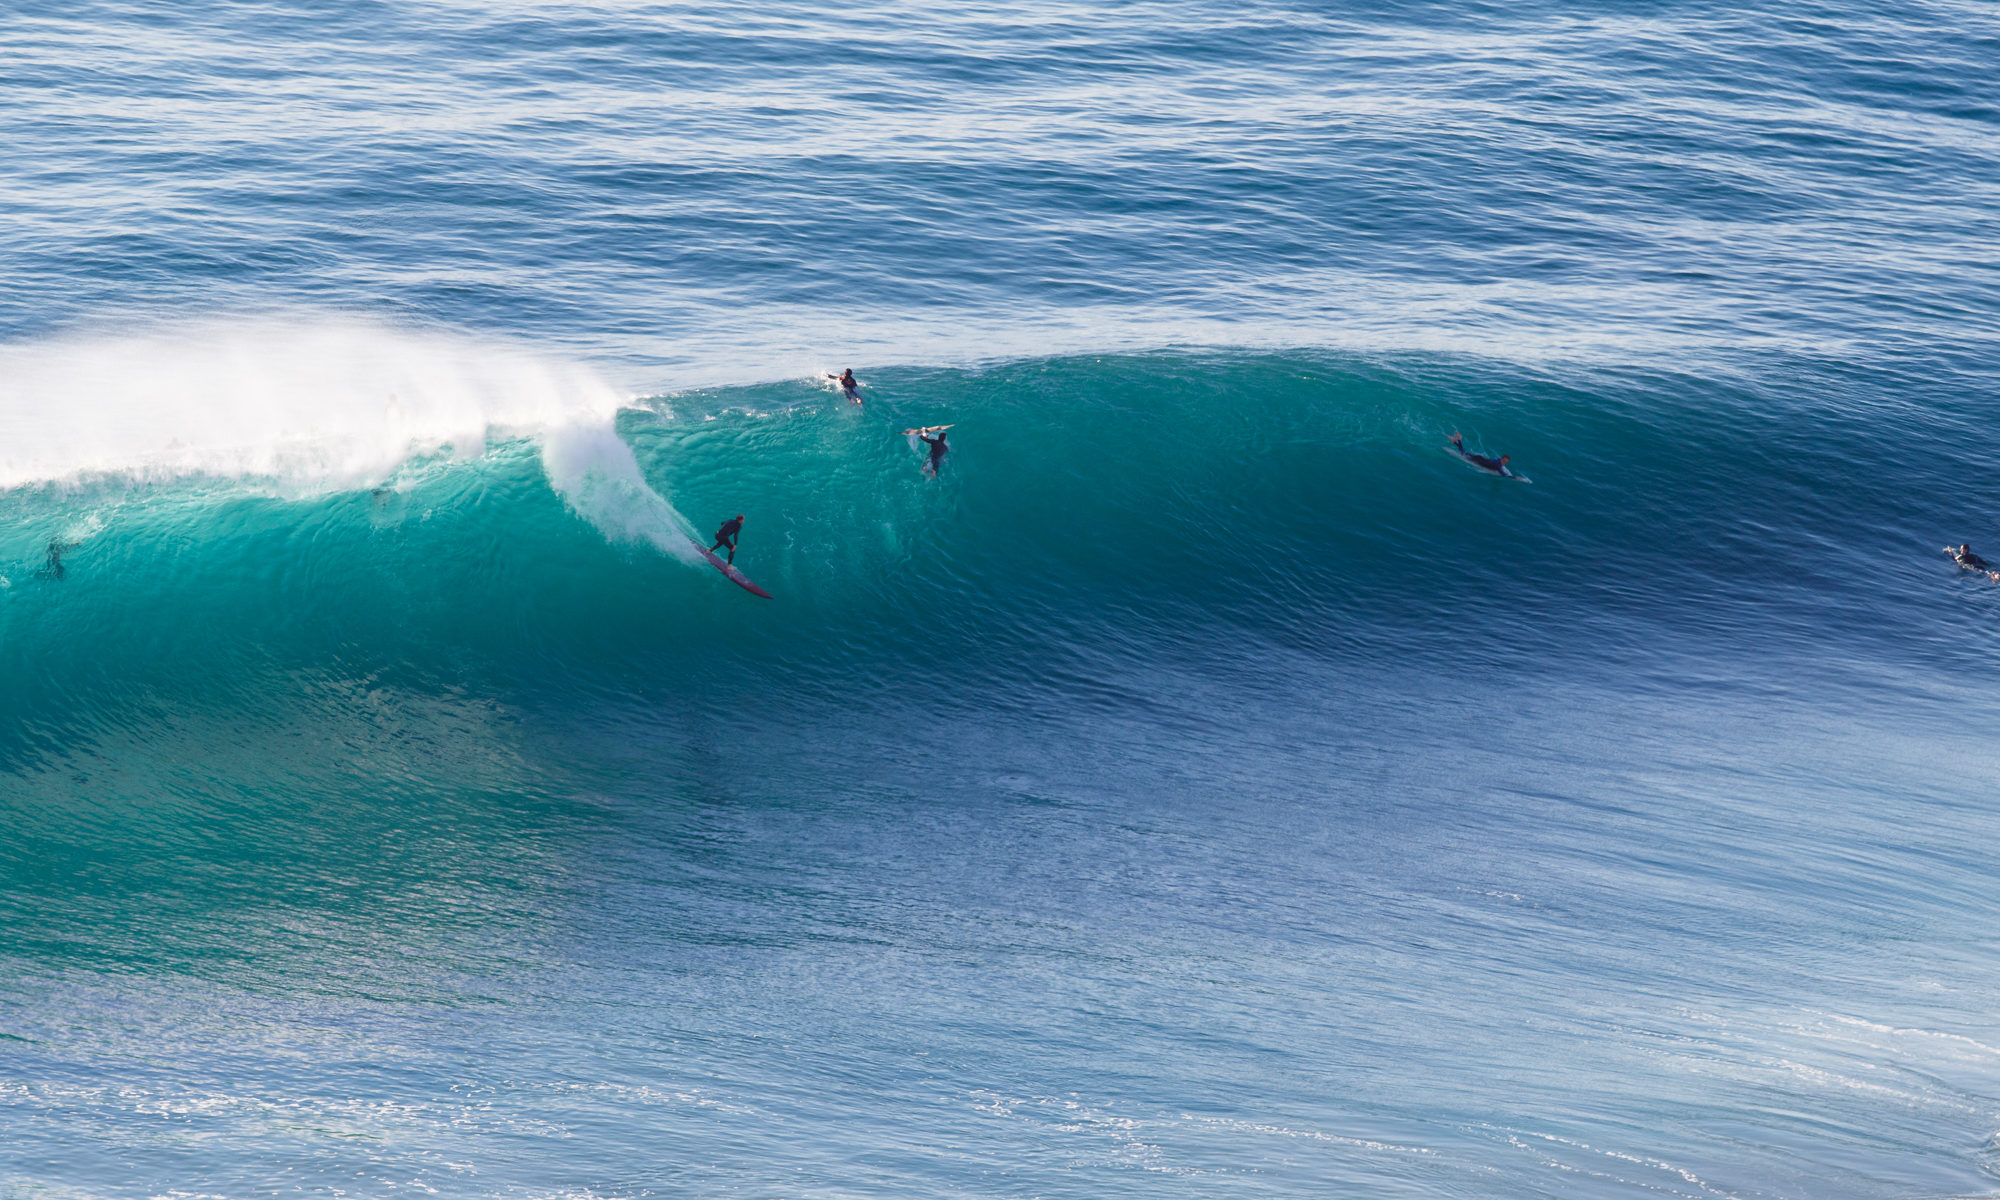 A surfer on a big wave at Blacks Beach by Mark Johnson/Ironstring